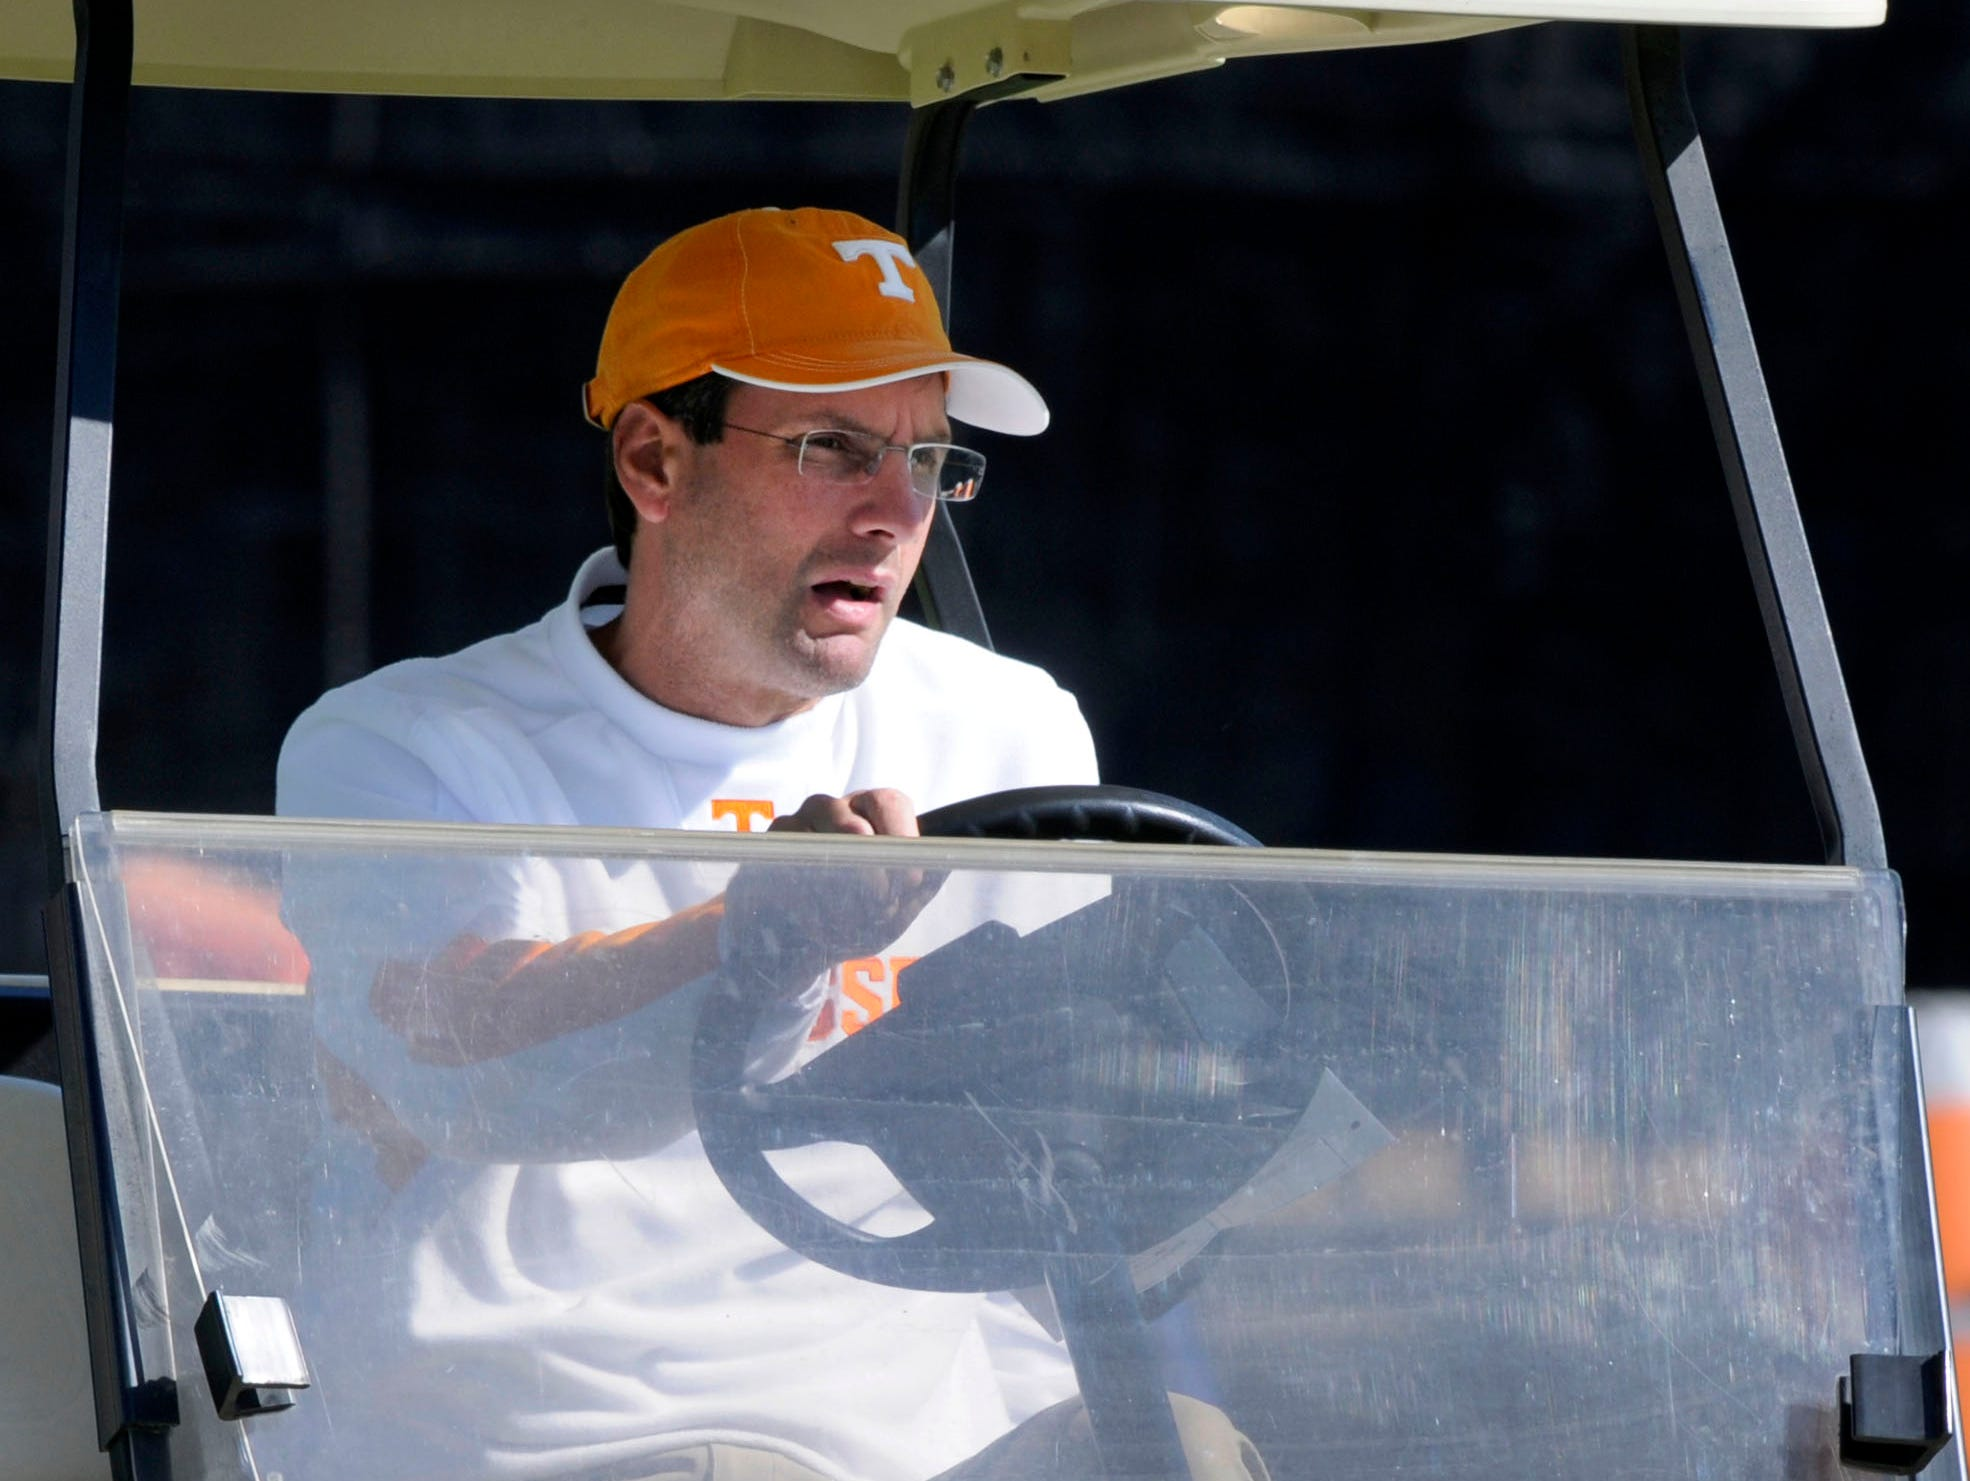 Tennessee Volunteers head coach Derek Dooley arrived for practice Thursday, Oct. 11, 2012 in a golf cart with his crutches riding in the back.